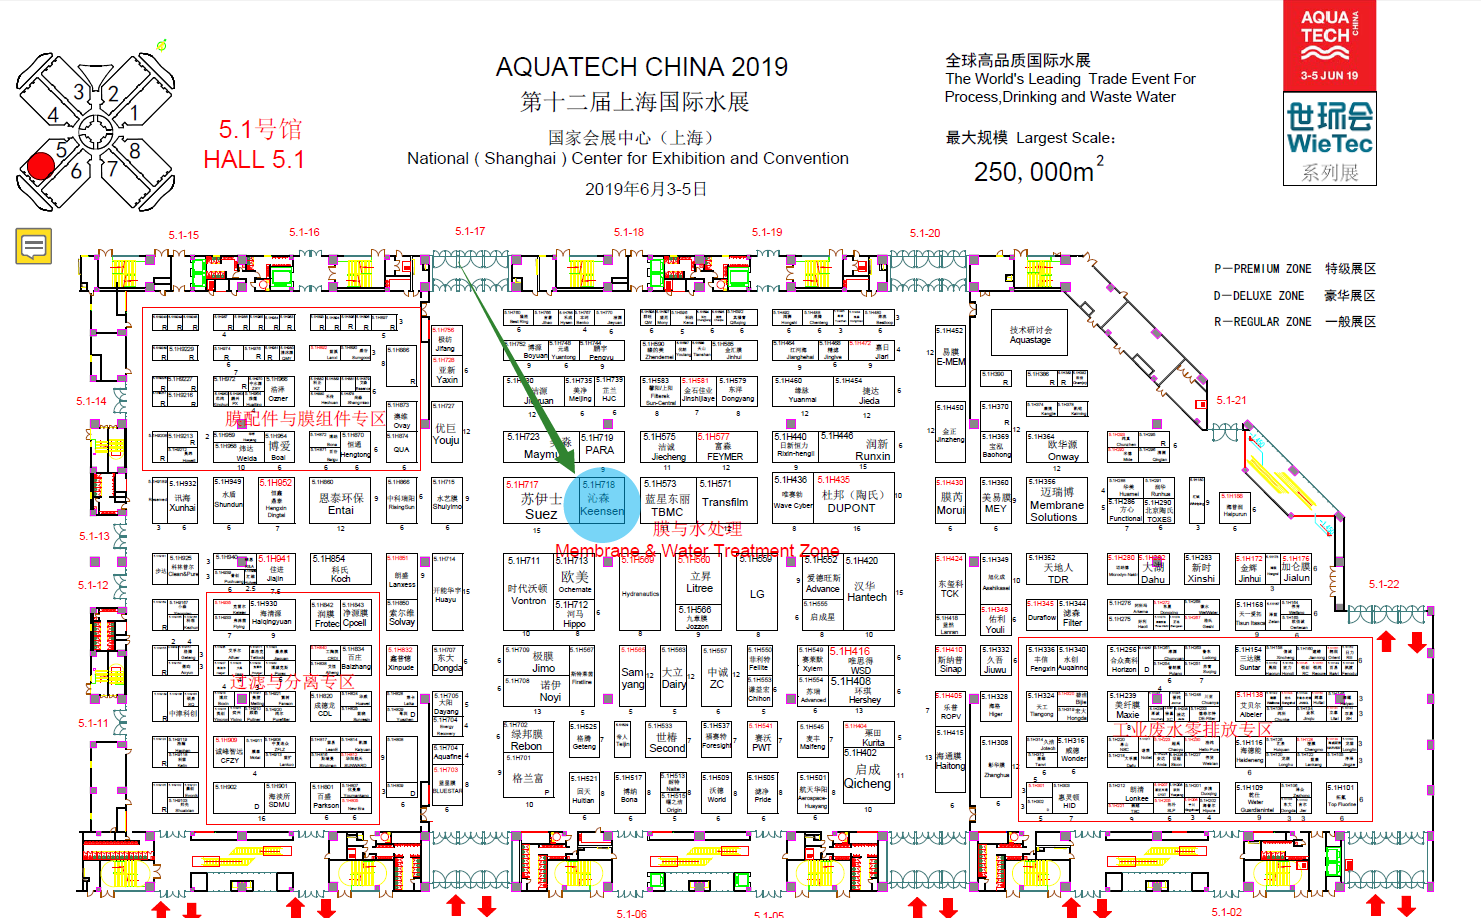 KeenSen will attend AQUATECH CHINA 2019